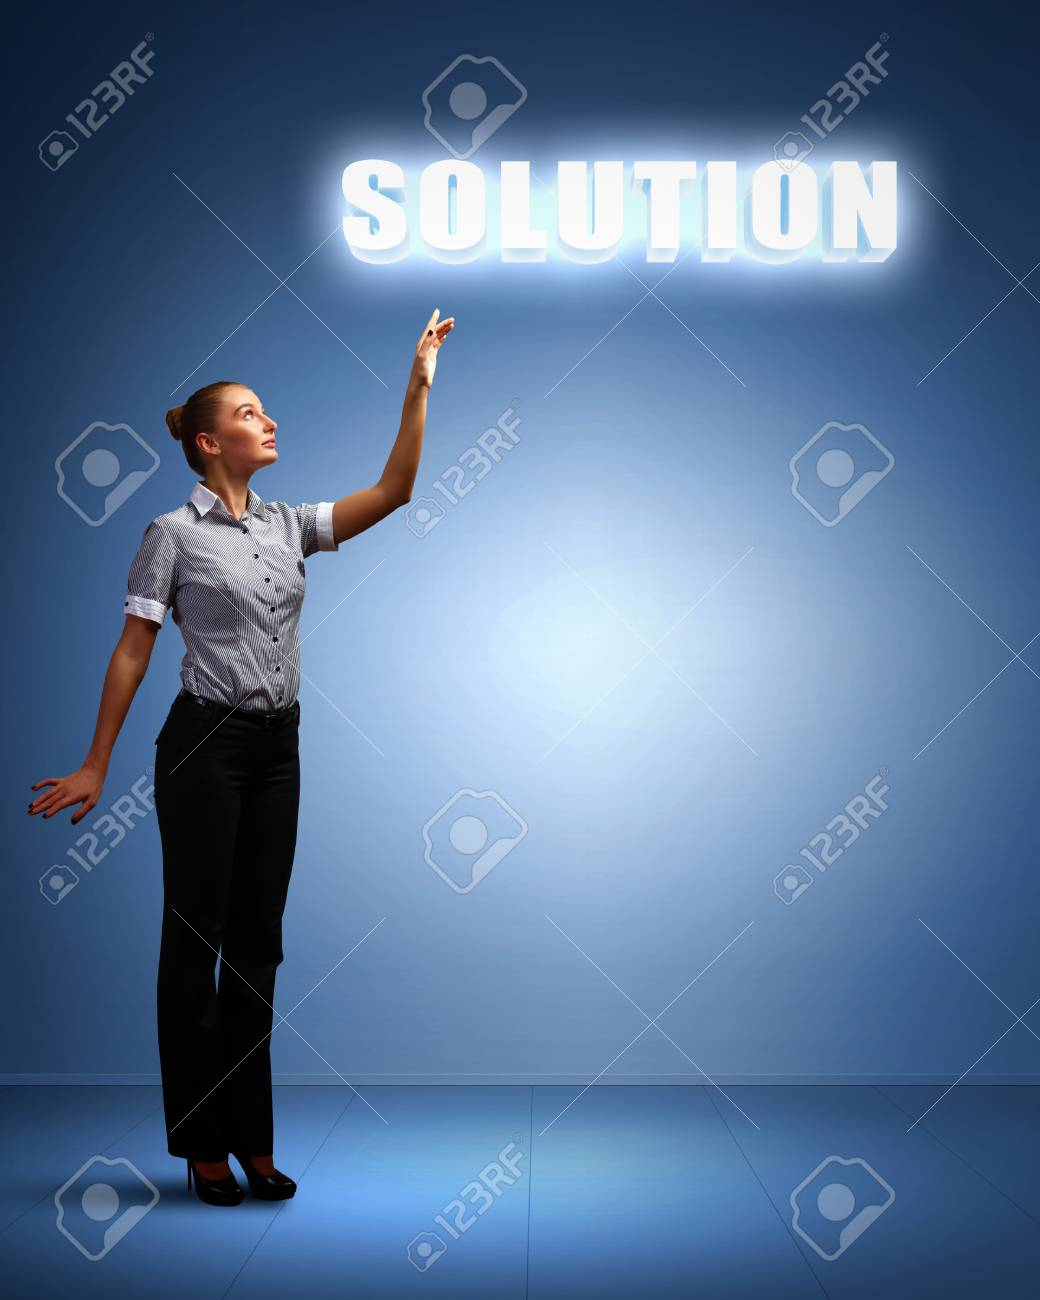 Light bulb and a business person as symbols of creativity in business Stock Photo - 14153715